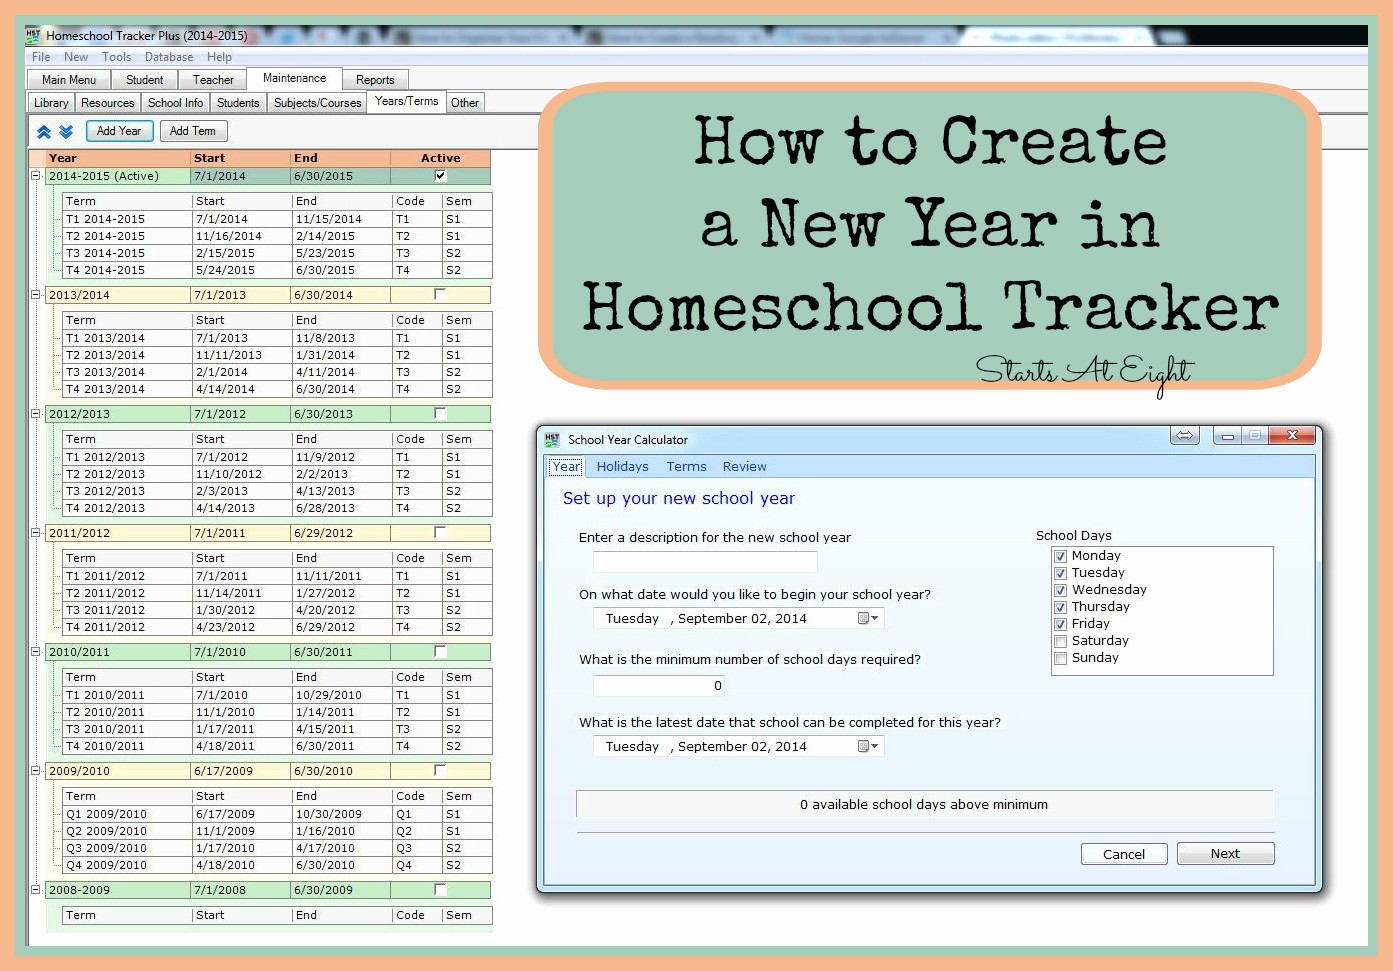 How to Create A Tracker Beautiful How to Create A New Year In Homeschool Tracker Startsateight